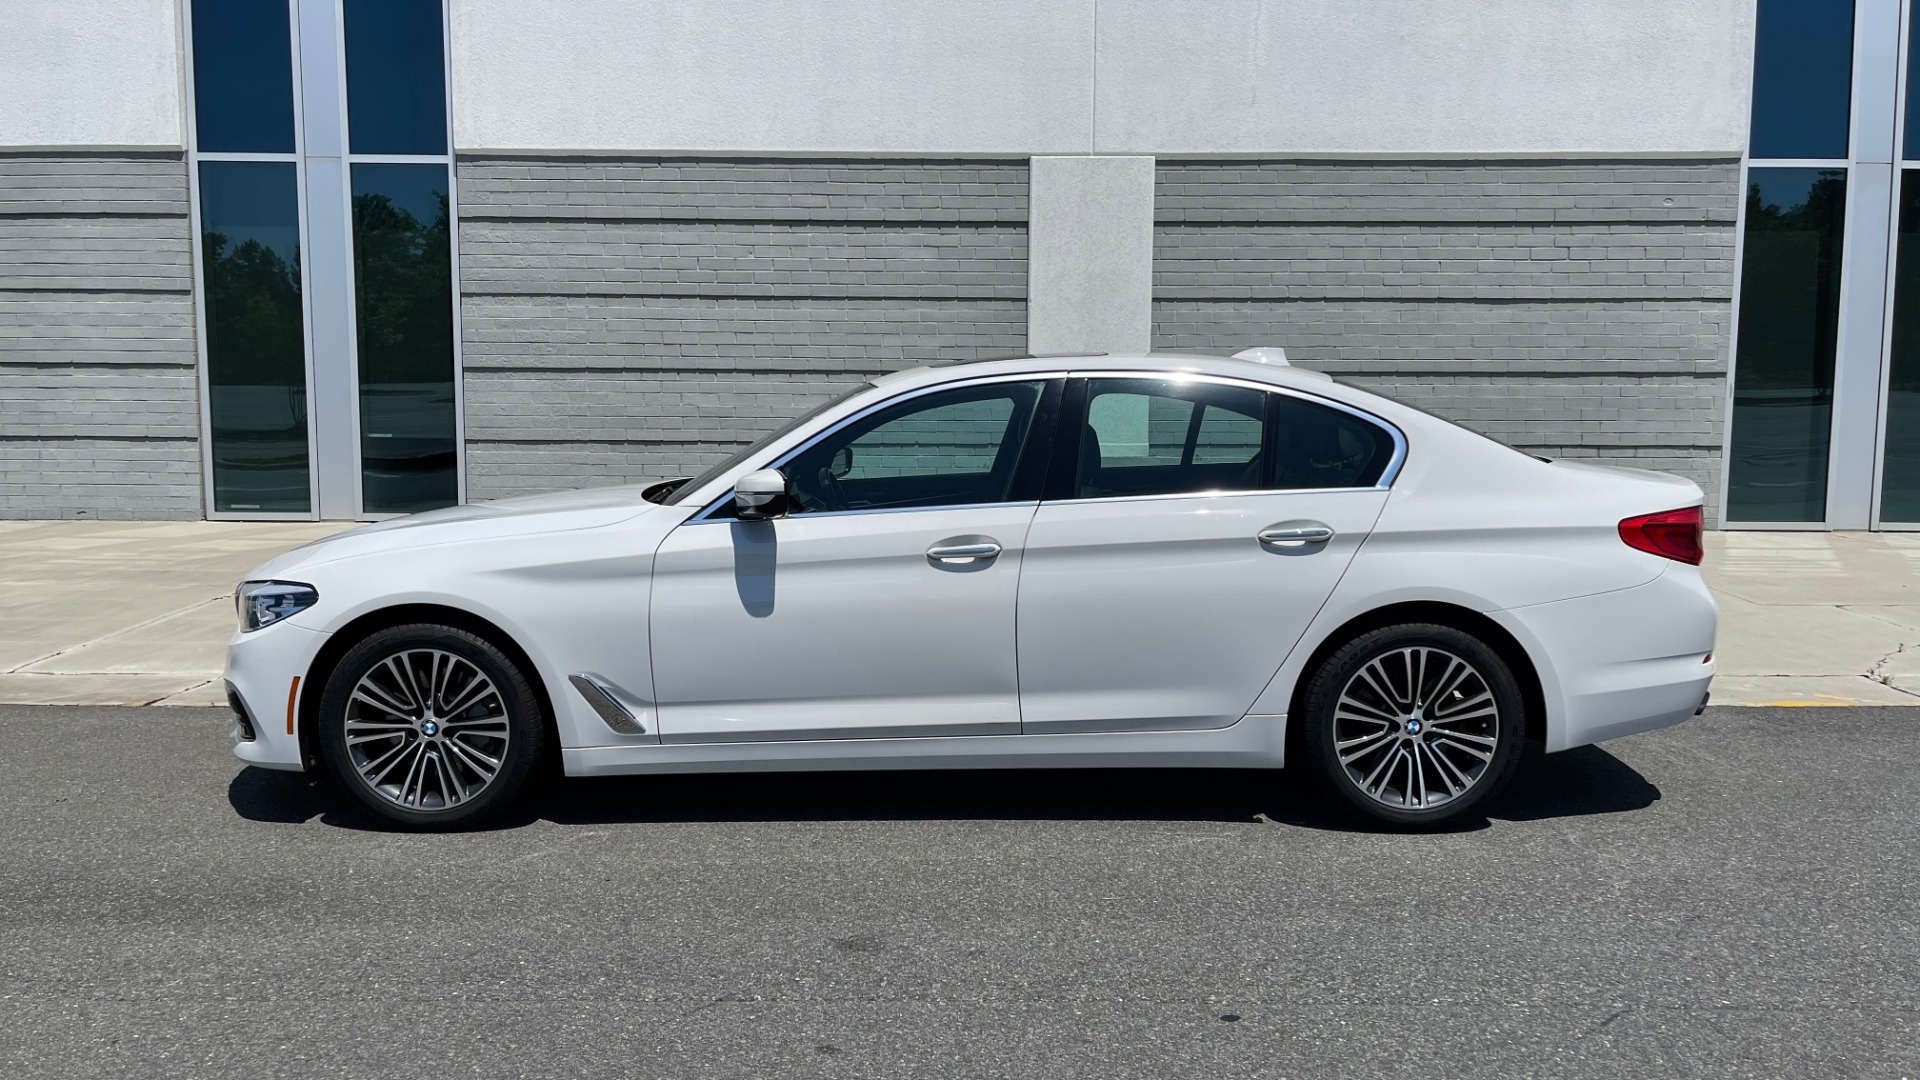 Used 2018 BMW 5 SERIES 540IXDRIVE PREMIUM / PARK ASSIST / KEYLESS ENTRY / SUNROOF / REARVIEW for sale $42,995 at Formula Imports in Charlotte NC 28227 4